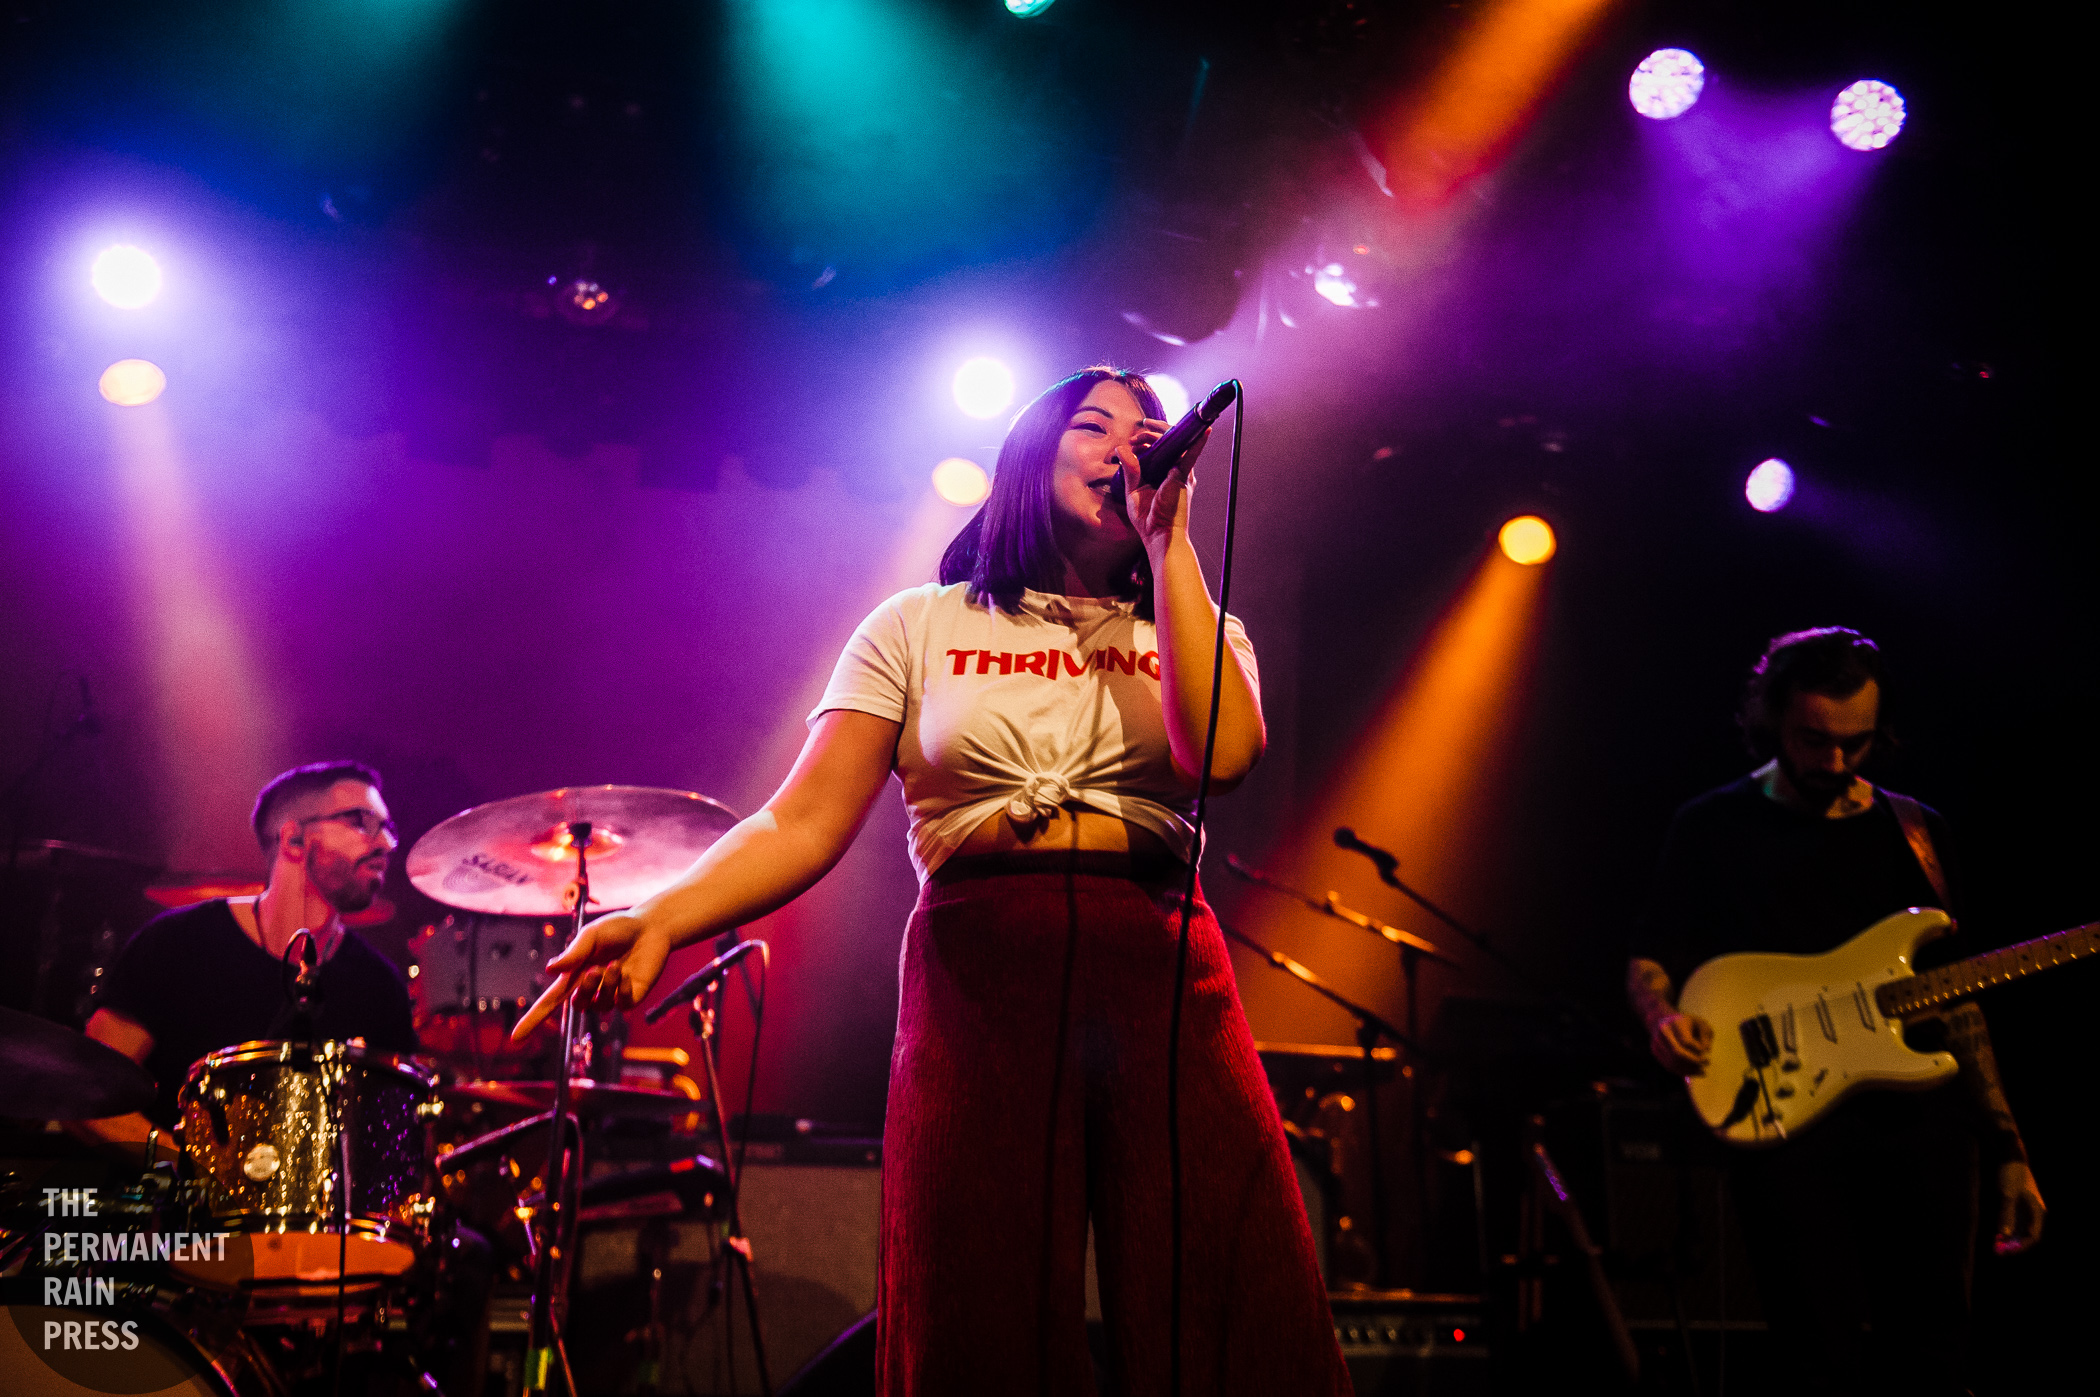 2_The_Belle_Game-Commodore_Ballroom-Timothy_Nguyen-20171020 (13 of 14).jpg